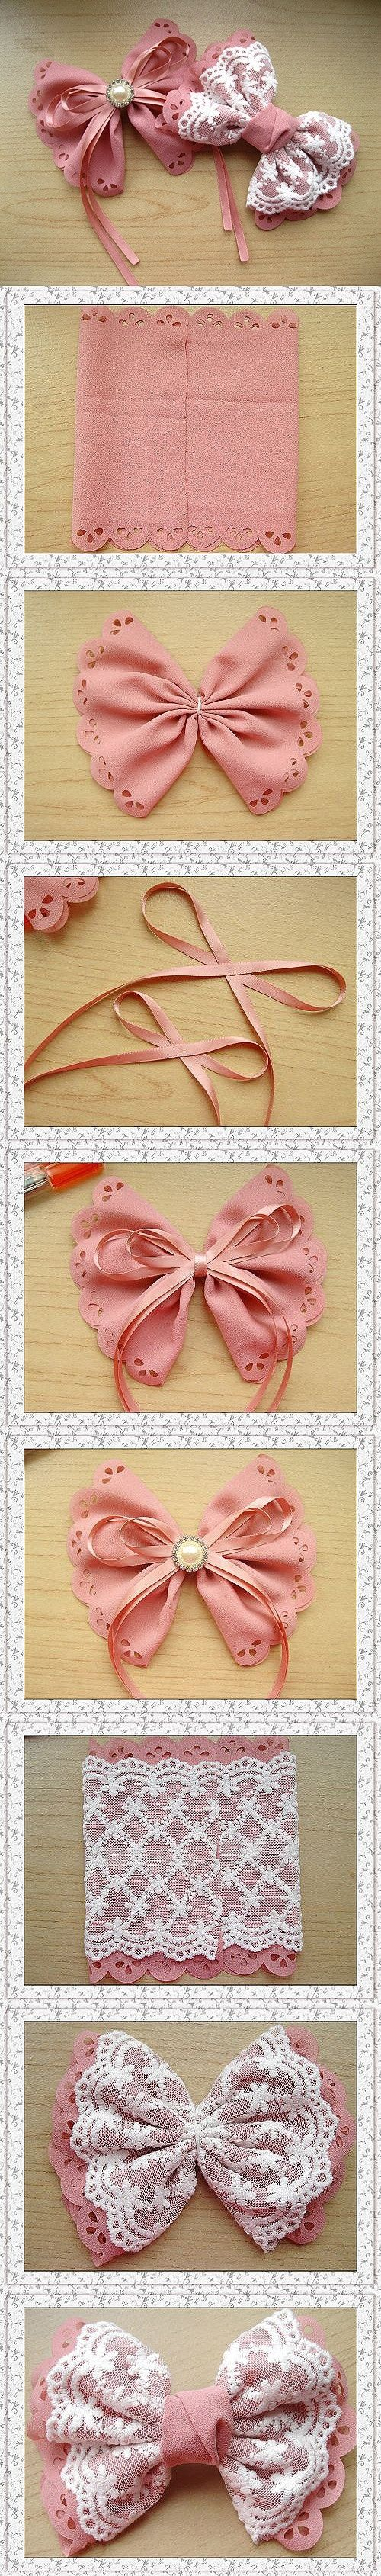 DIY Pretty Bow bow diy sew crafts home made easy crafts craft idea crafts ideas diy ideas diy crafts diy idea do it yourself diy projects diy craft handmade sewing craft bow sewing ideas